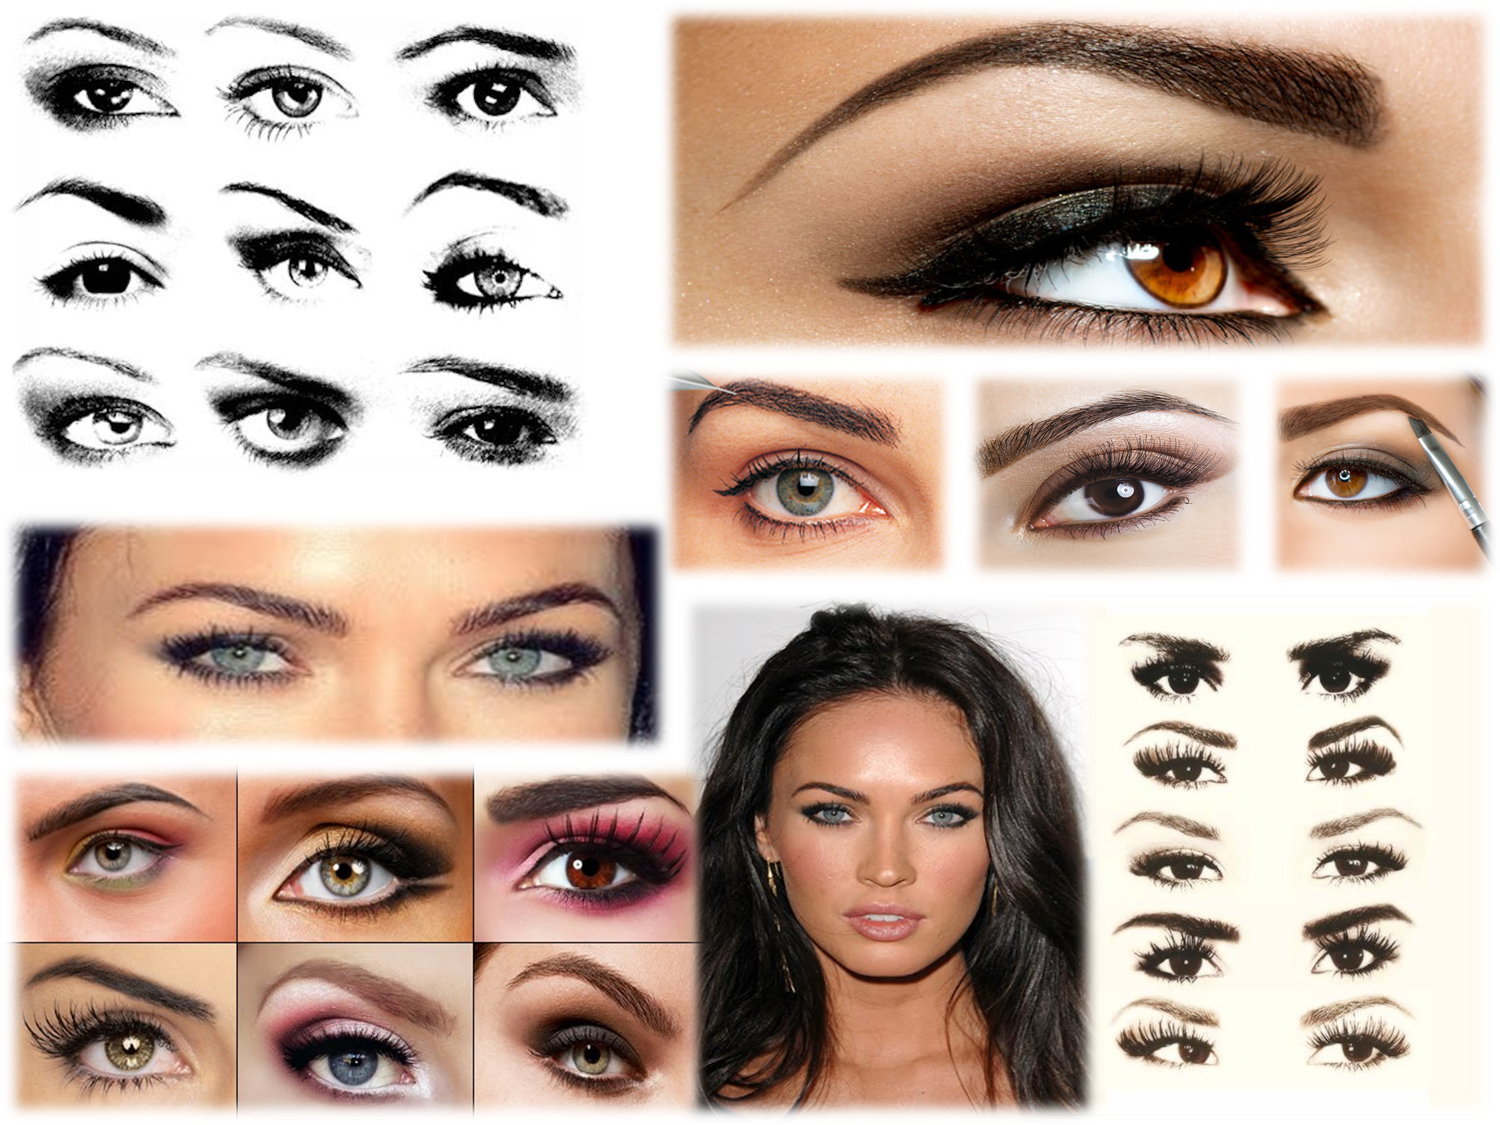 How To Shape Your Eyebrows Beauty Tips